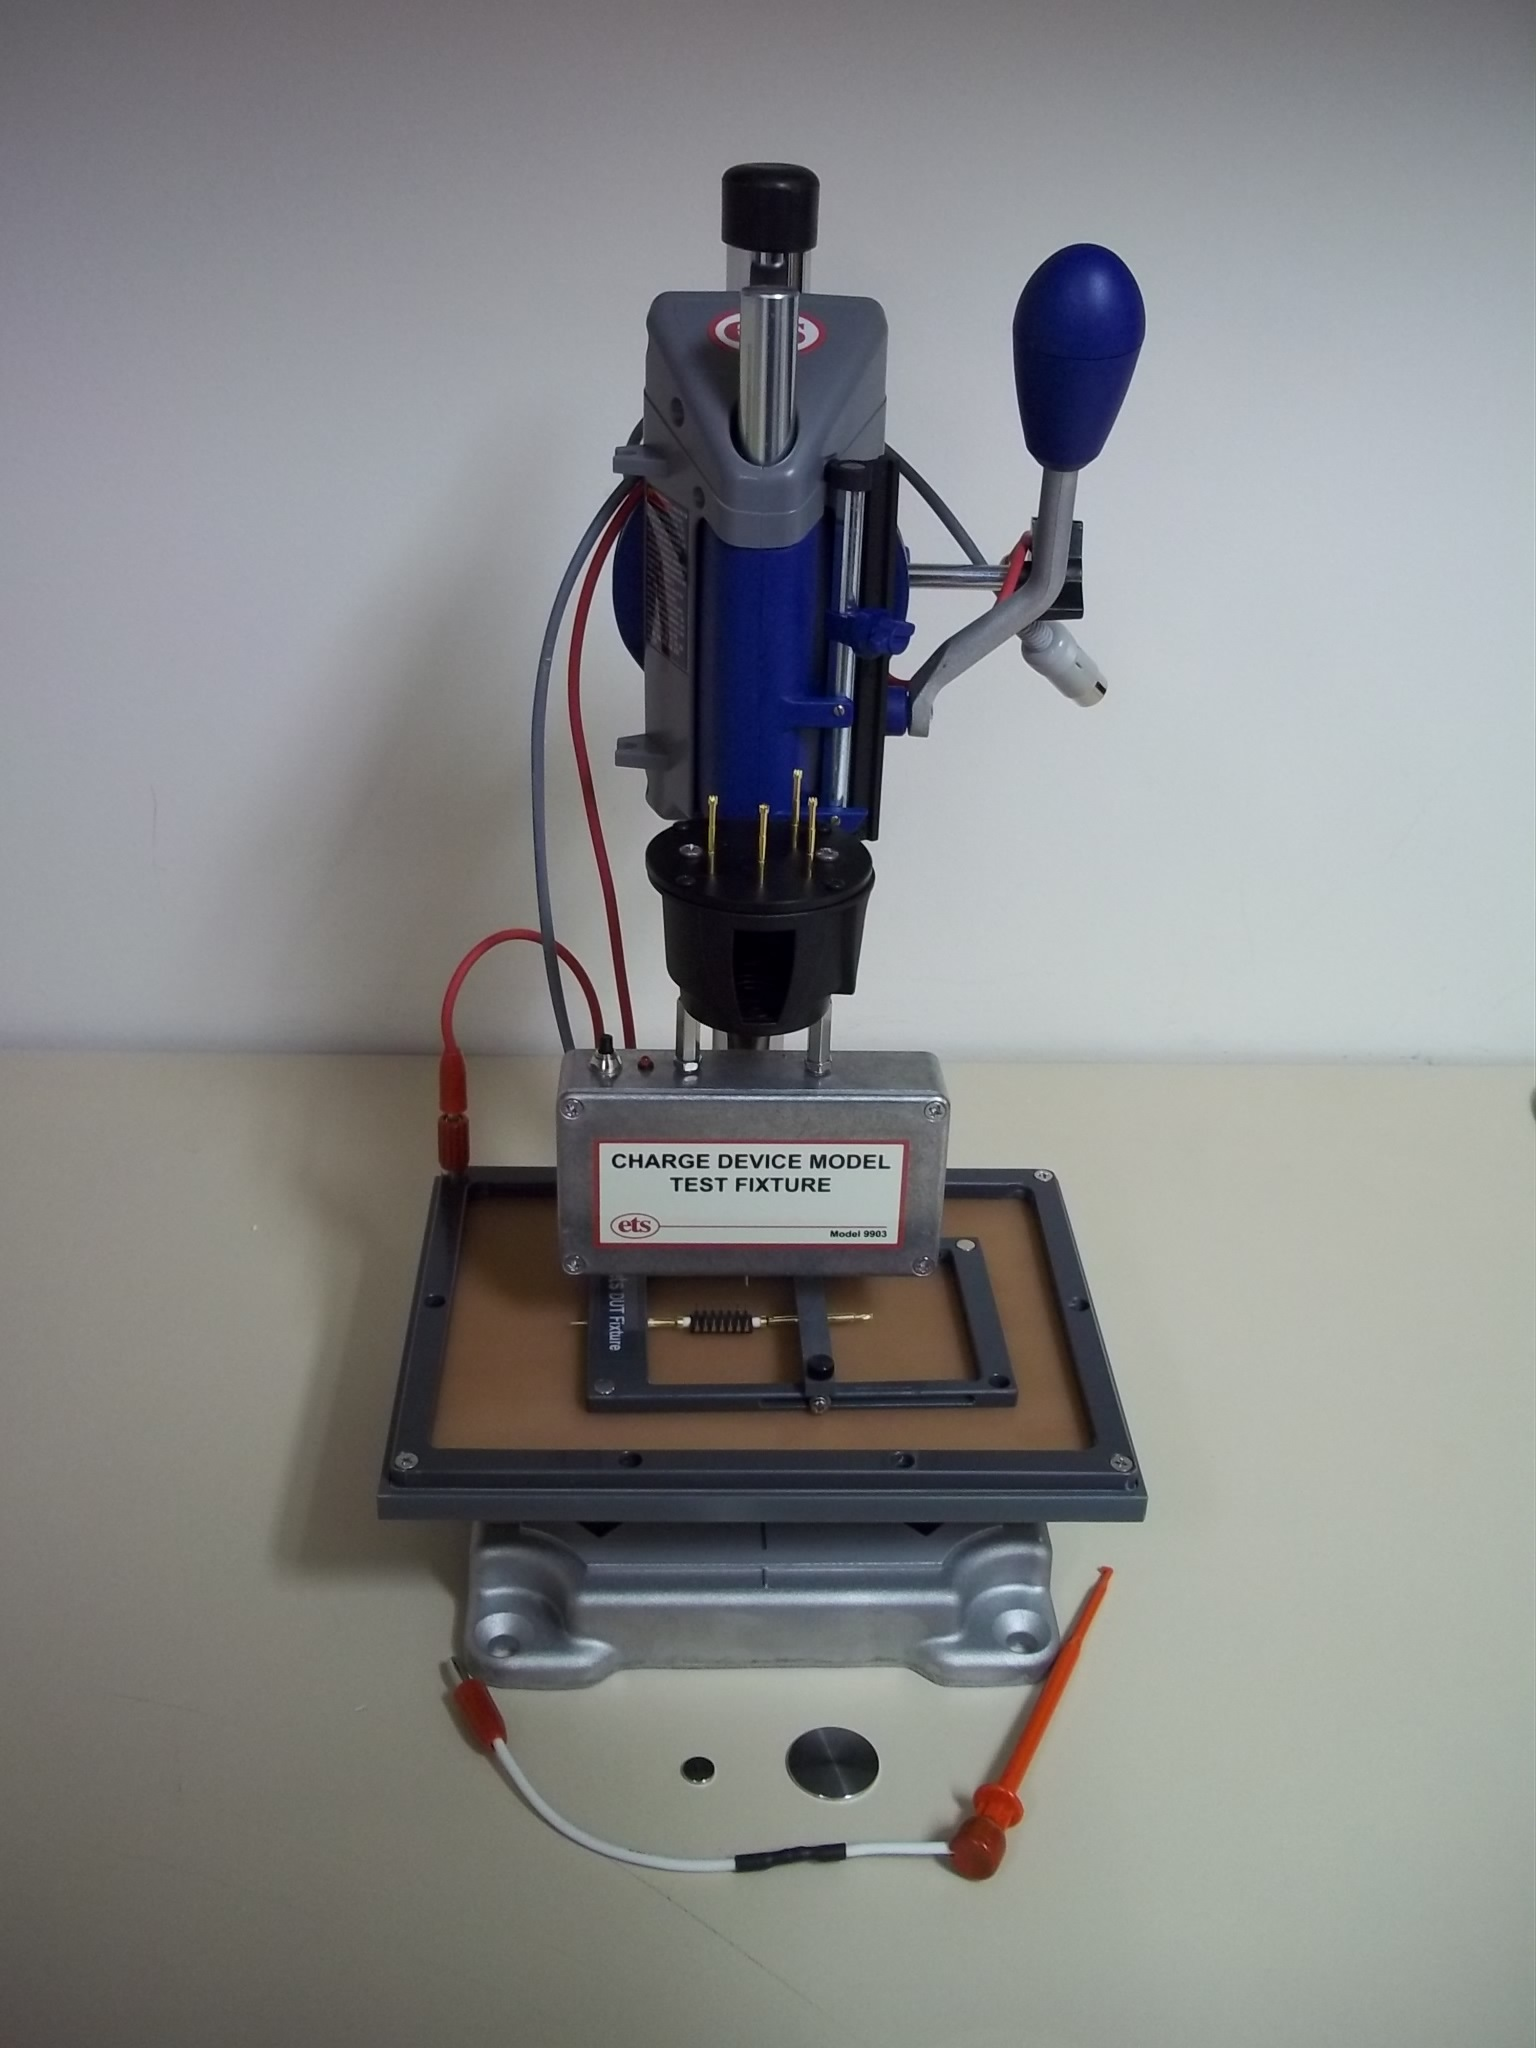 Model 9903 Charged Device Model Test Fixture